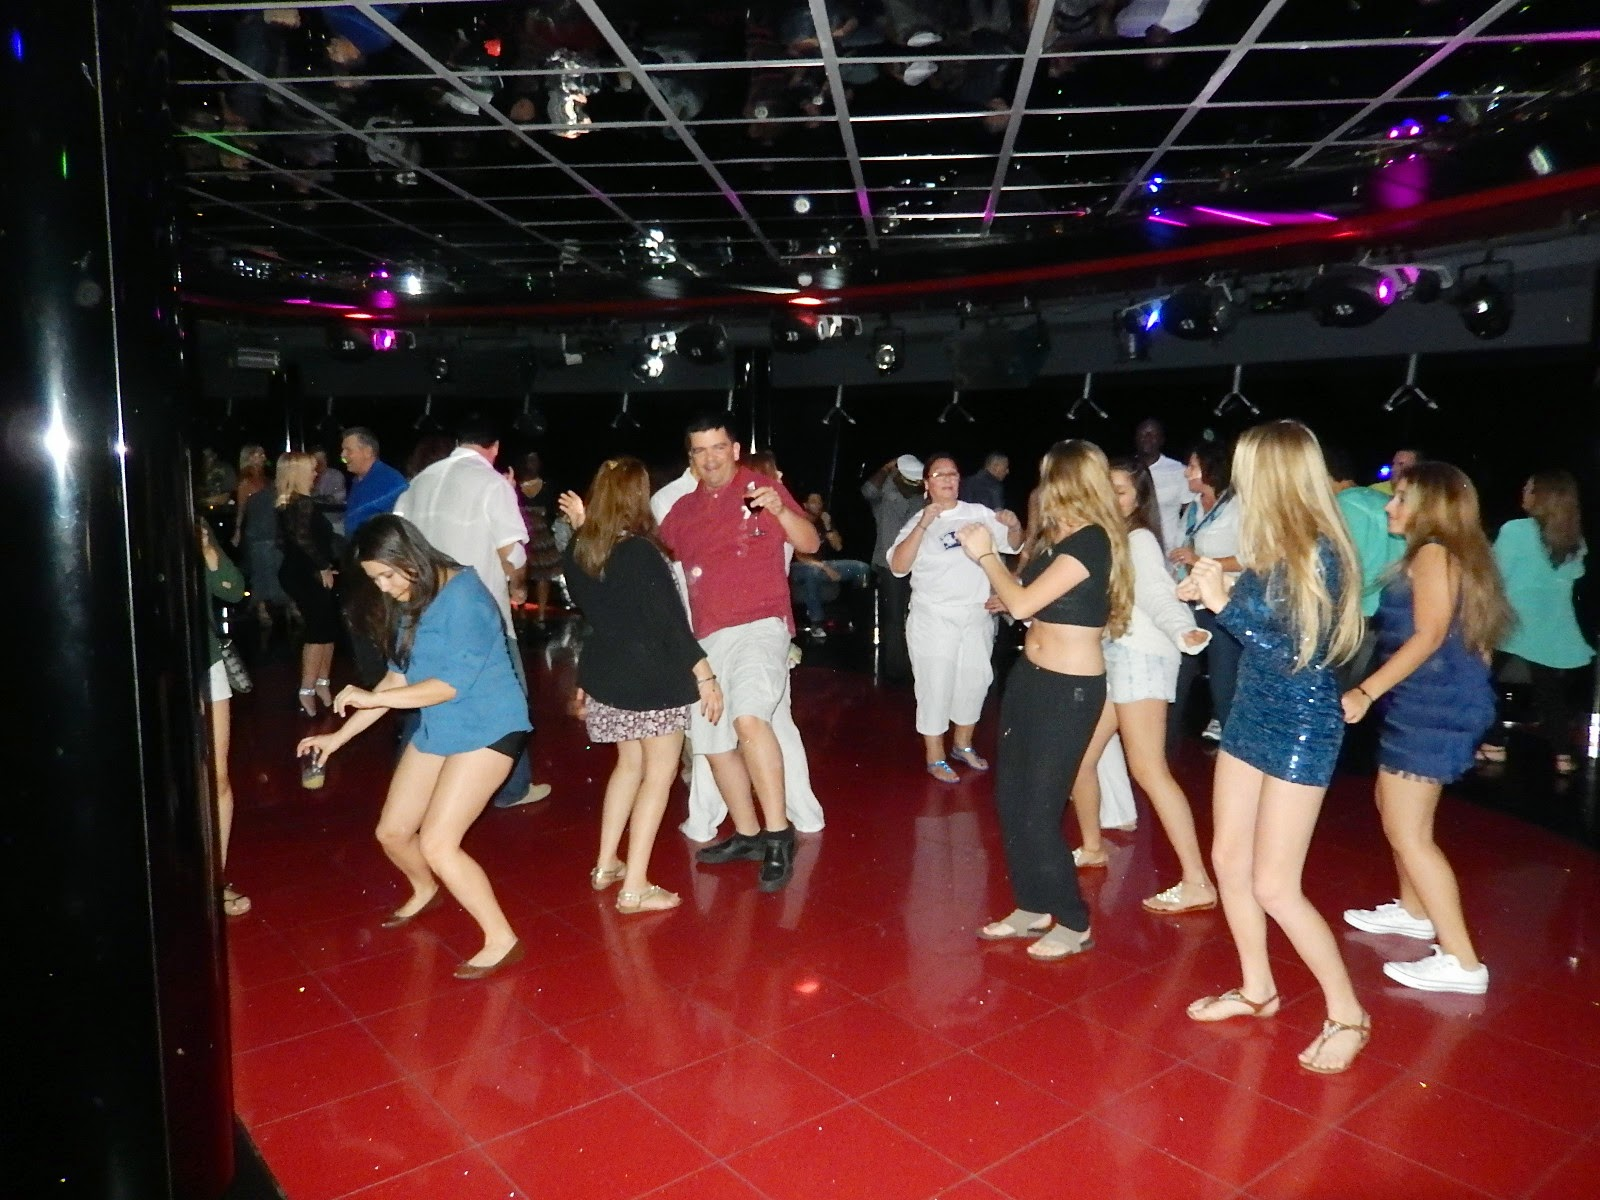 Save pleasure island club report galaxy disco msc divina for 1 2 3 4 sexin on the dance floor